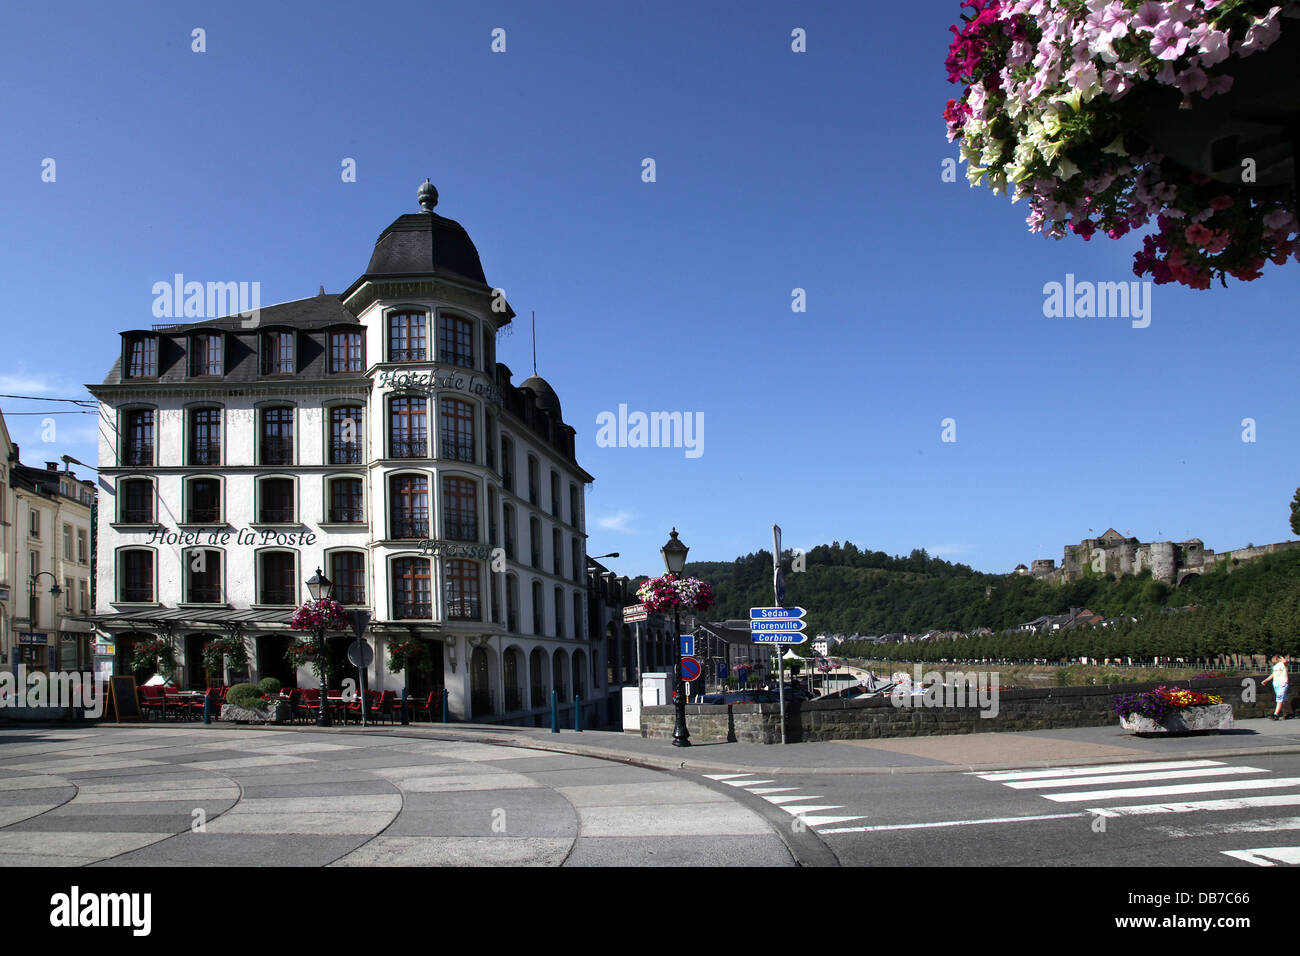 Bouillon.a municipality in Belgium. It lies in the country's Walloon Region and Luxembourg Province.Hotel de - Stock Image